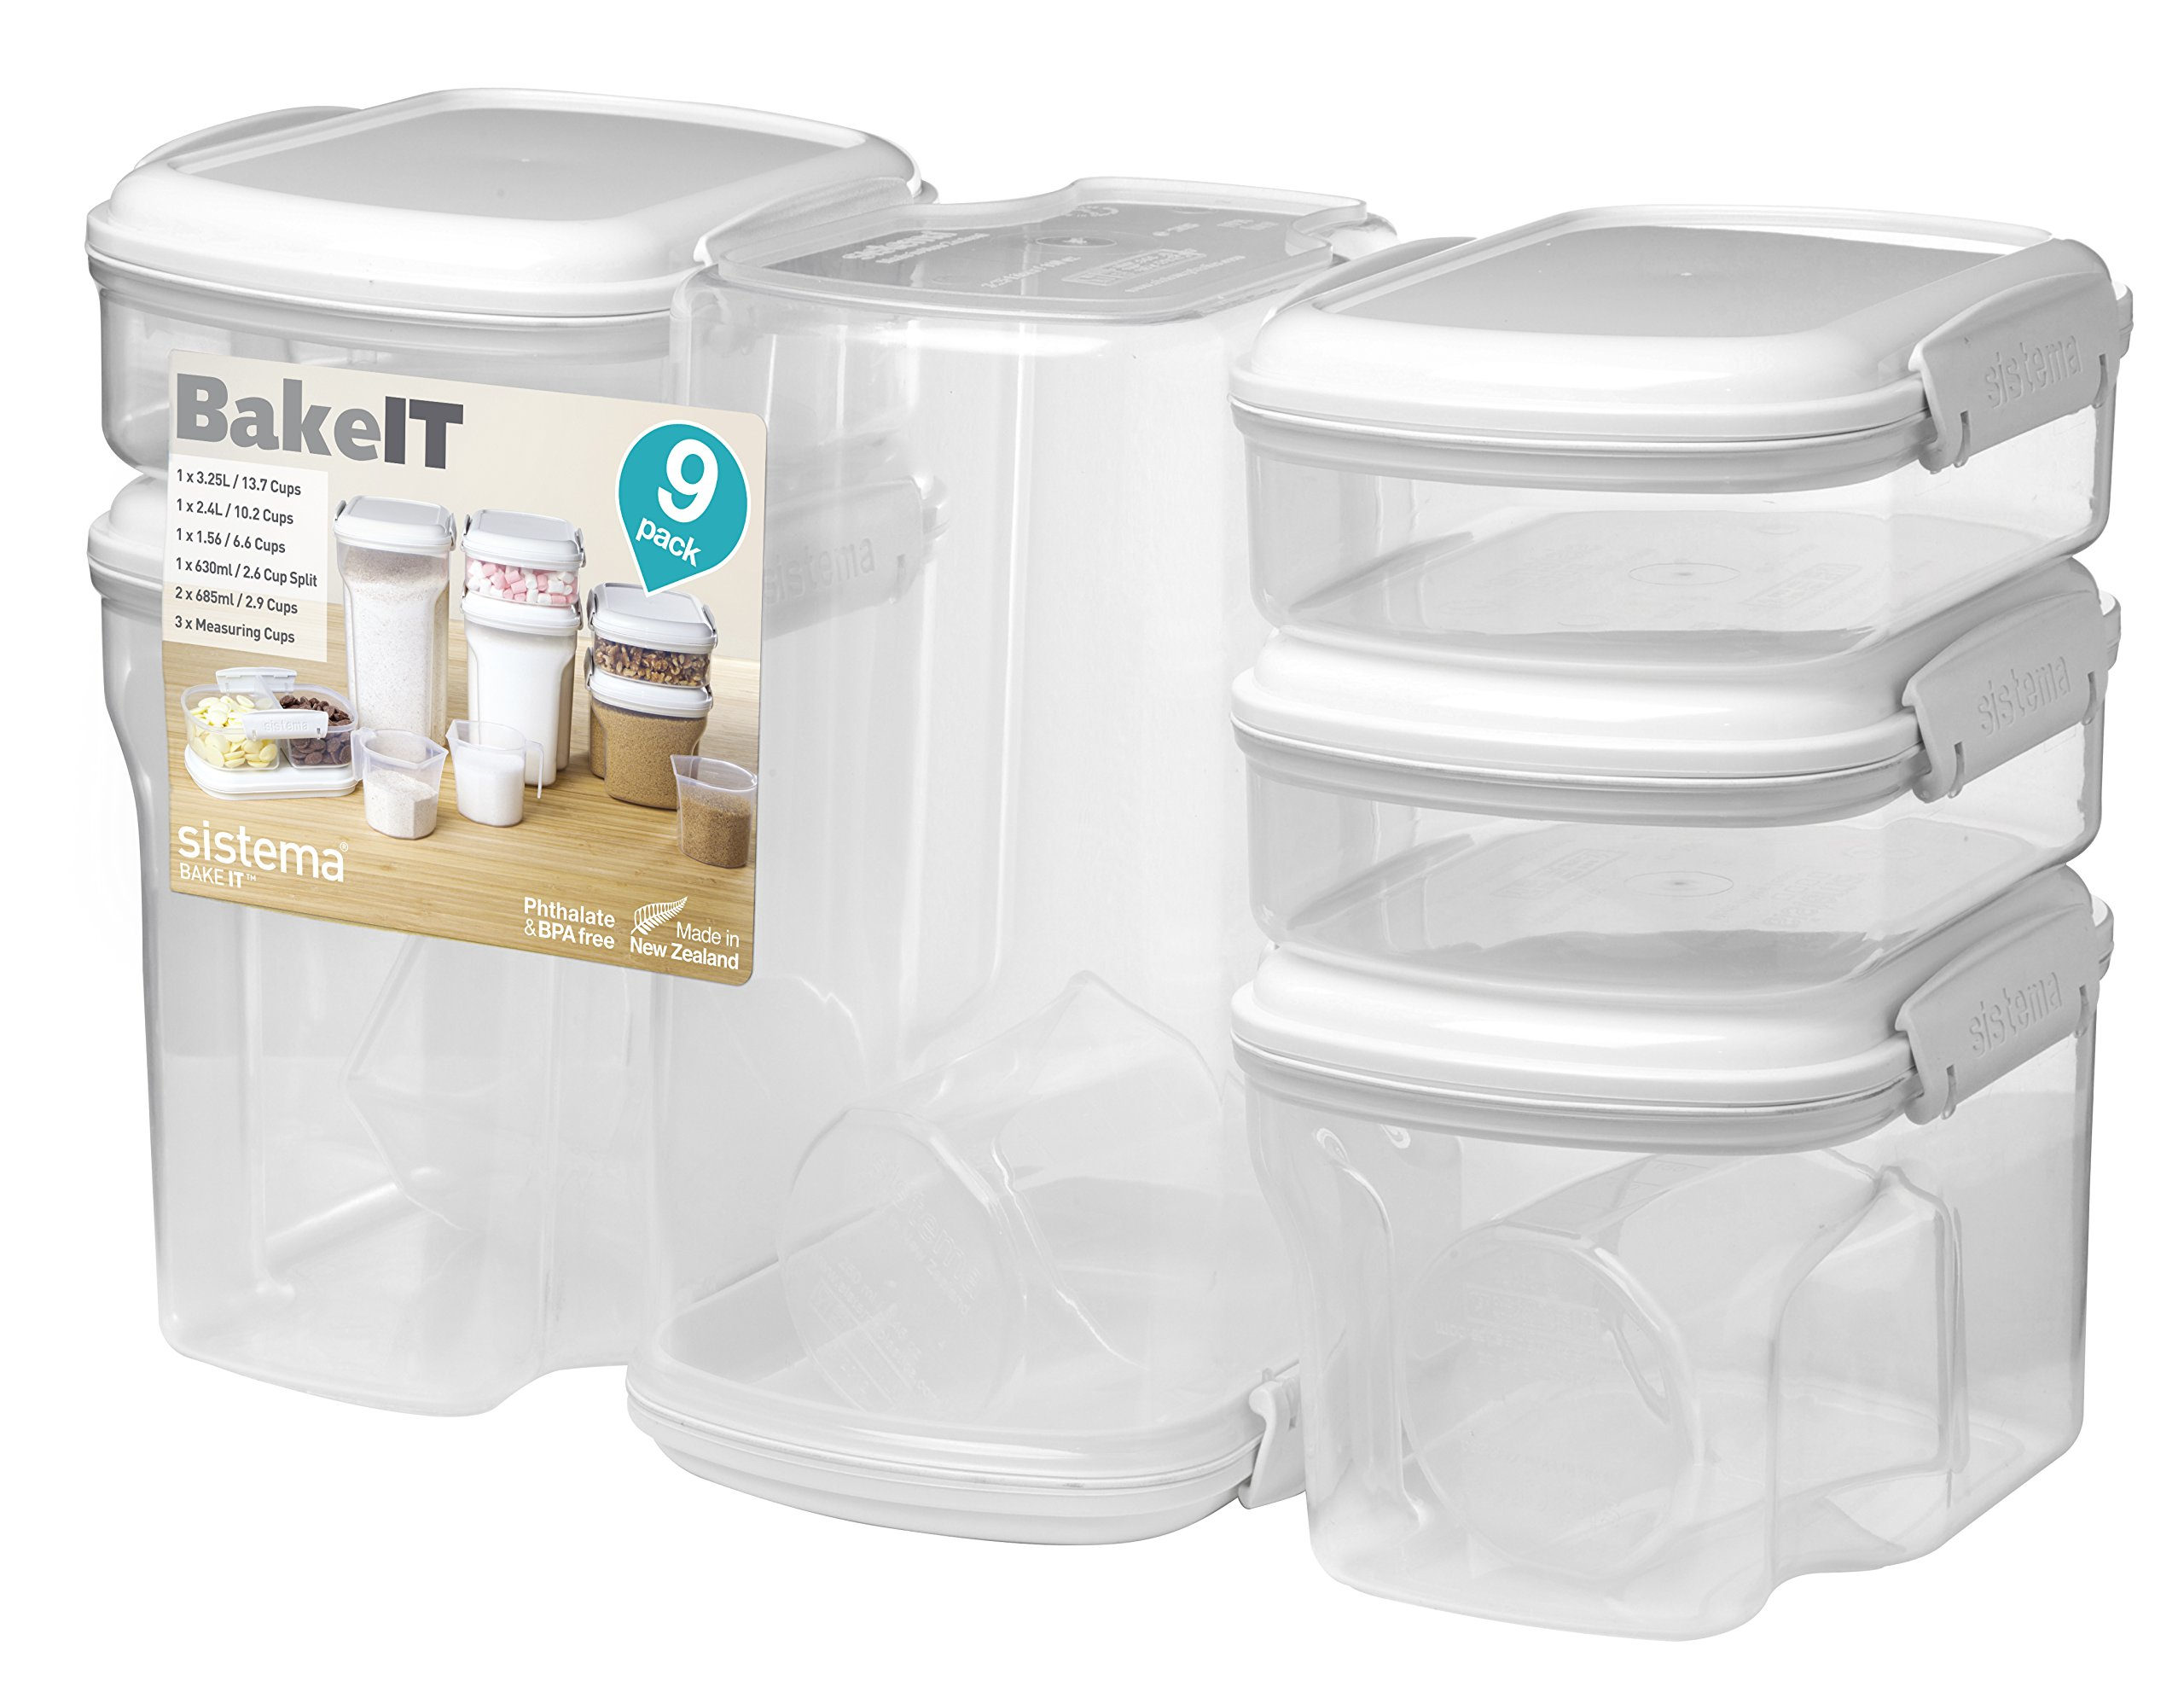 Sistema Bake IT Collection Food Storage Containers, Clear/White, 9-Piece Set by Sistema